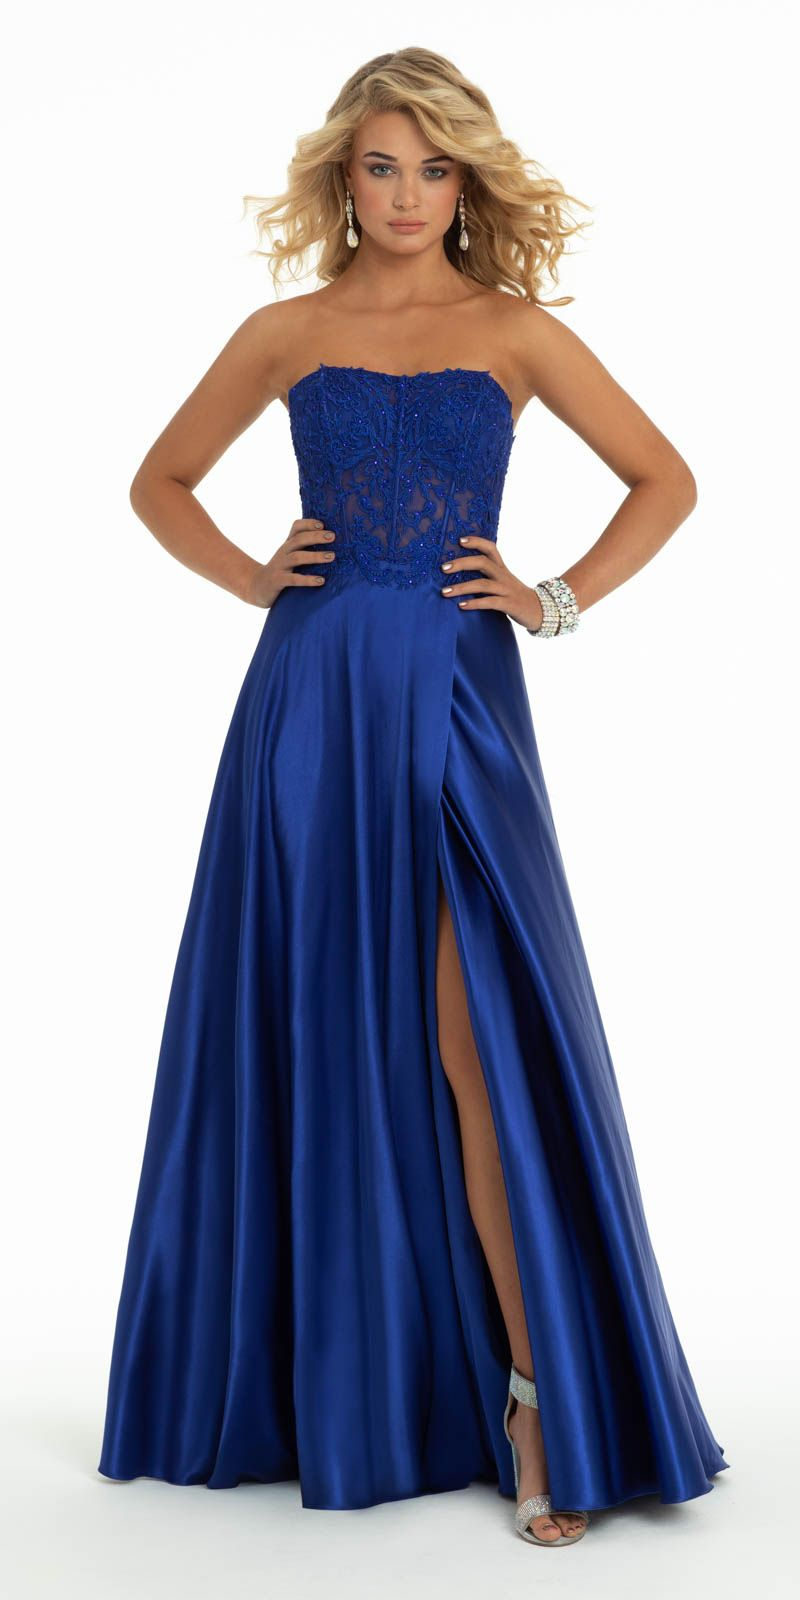 Embroidered Corset Lace Up Back Satin Dress Lace Corset Dresses Satin Dresses